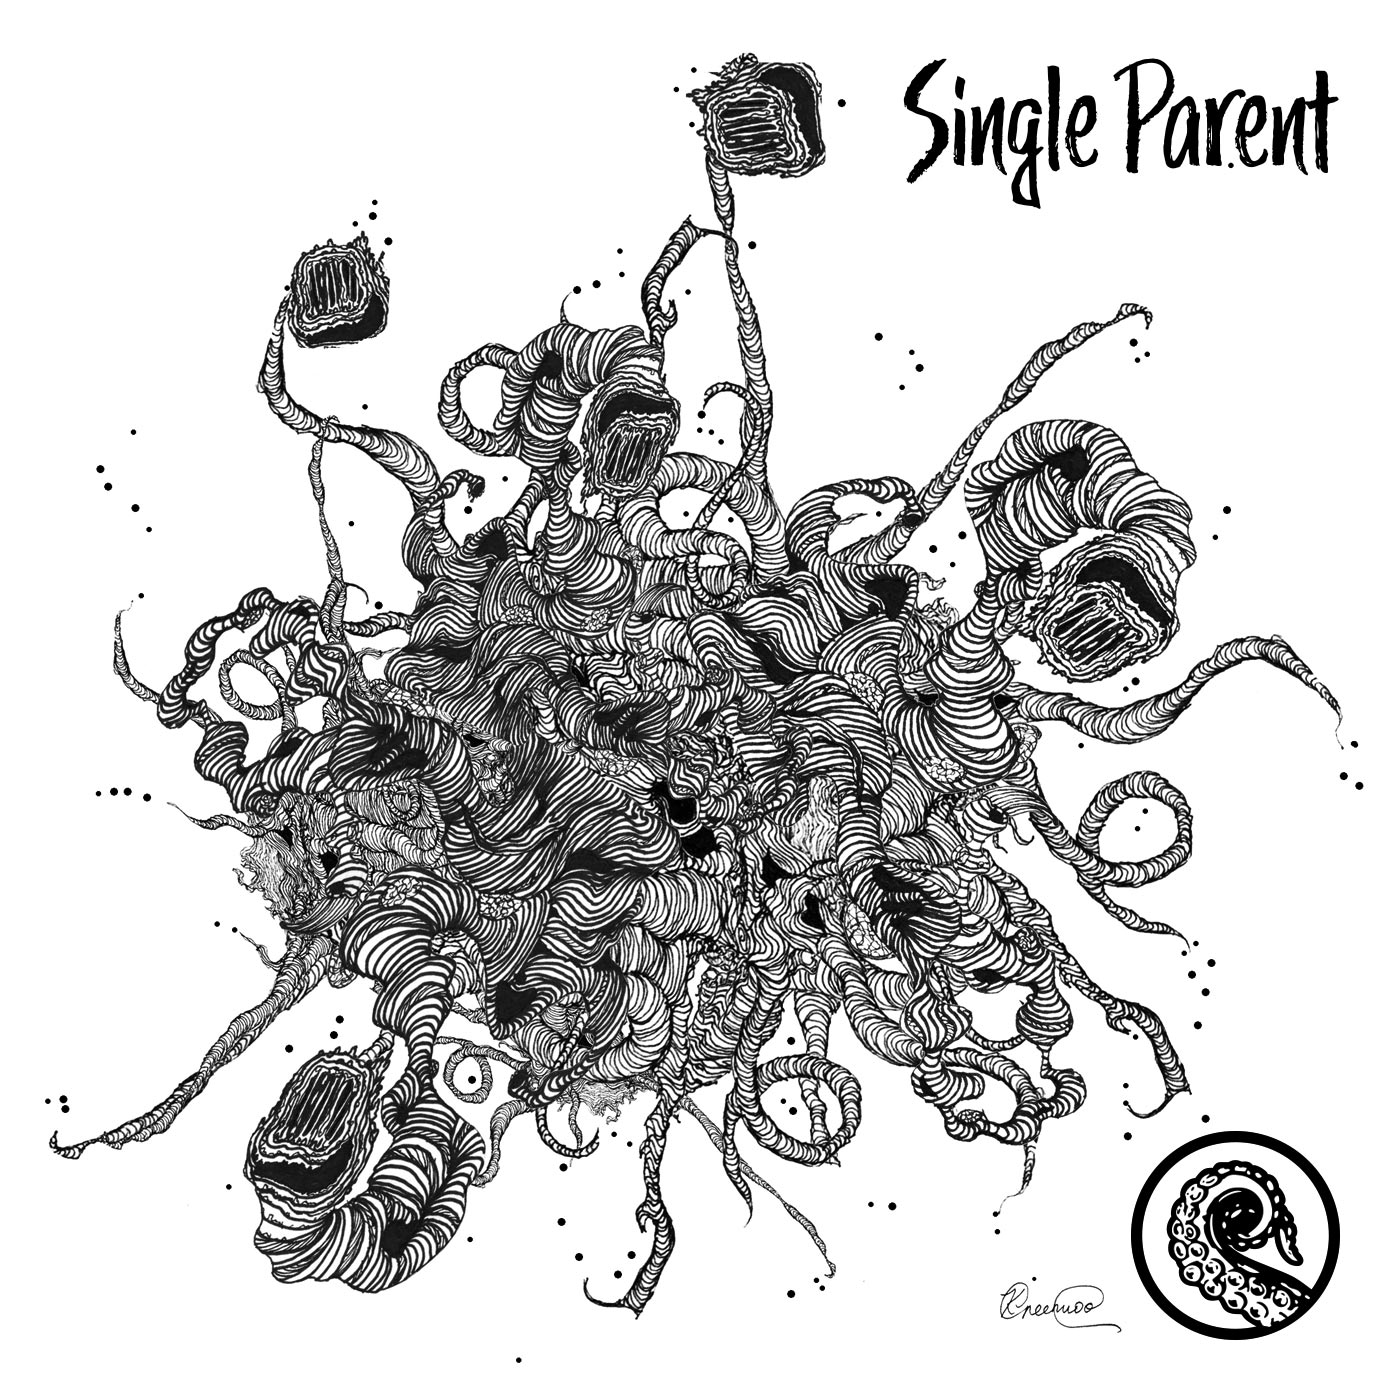 Drabblecast 392 - Single Parent - The Drabblecast